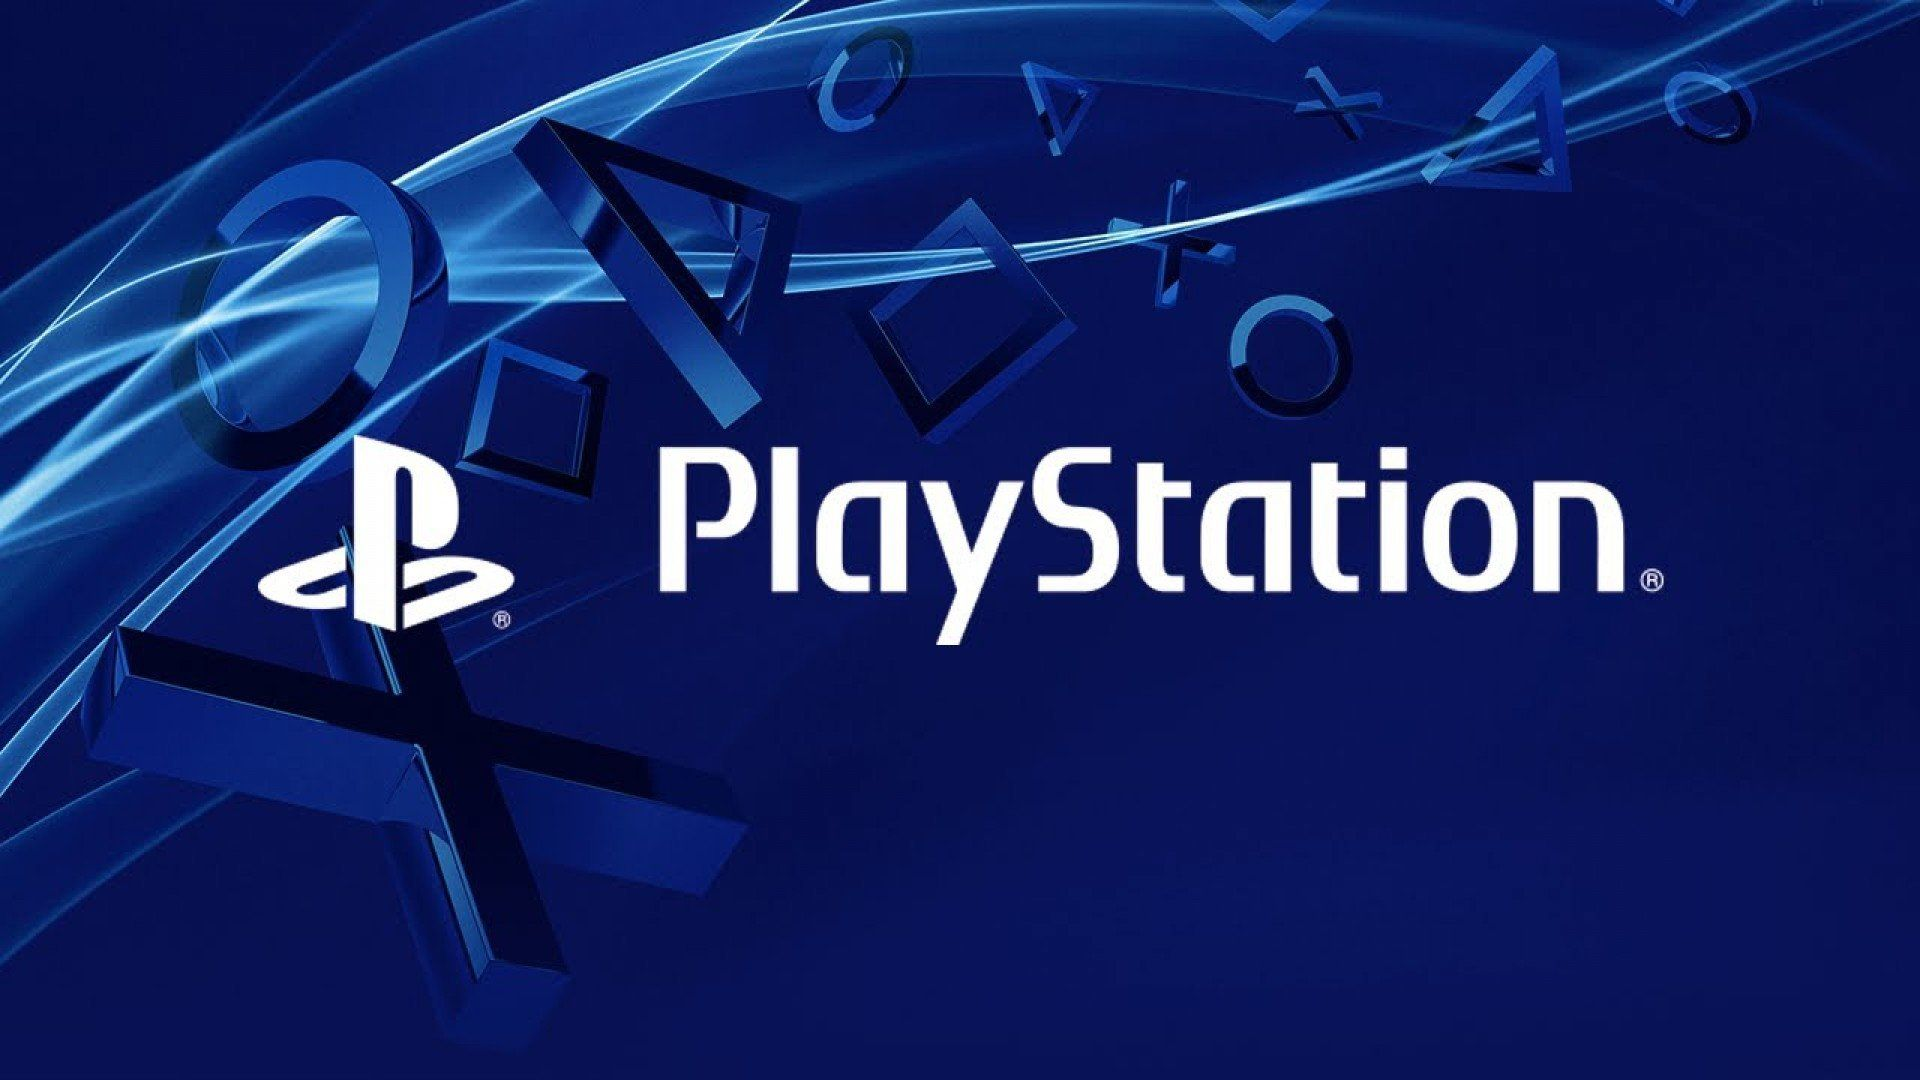 PlayStation Wallpapers   Top PlayStation Backgrounds 1920x1080